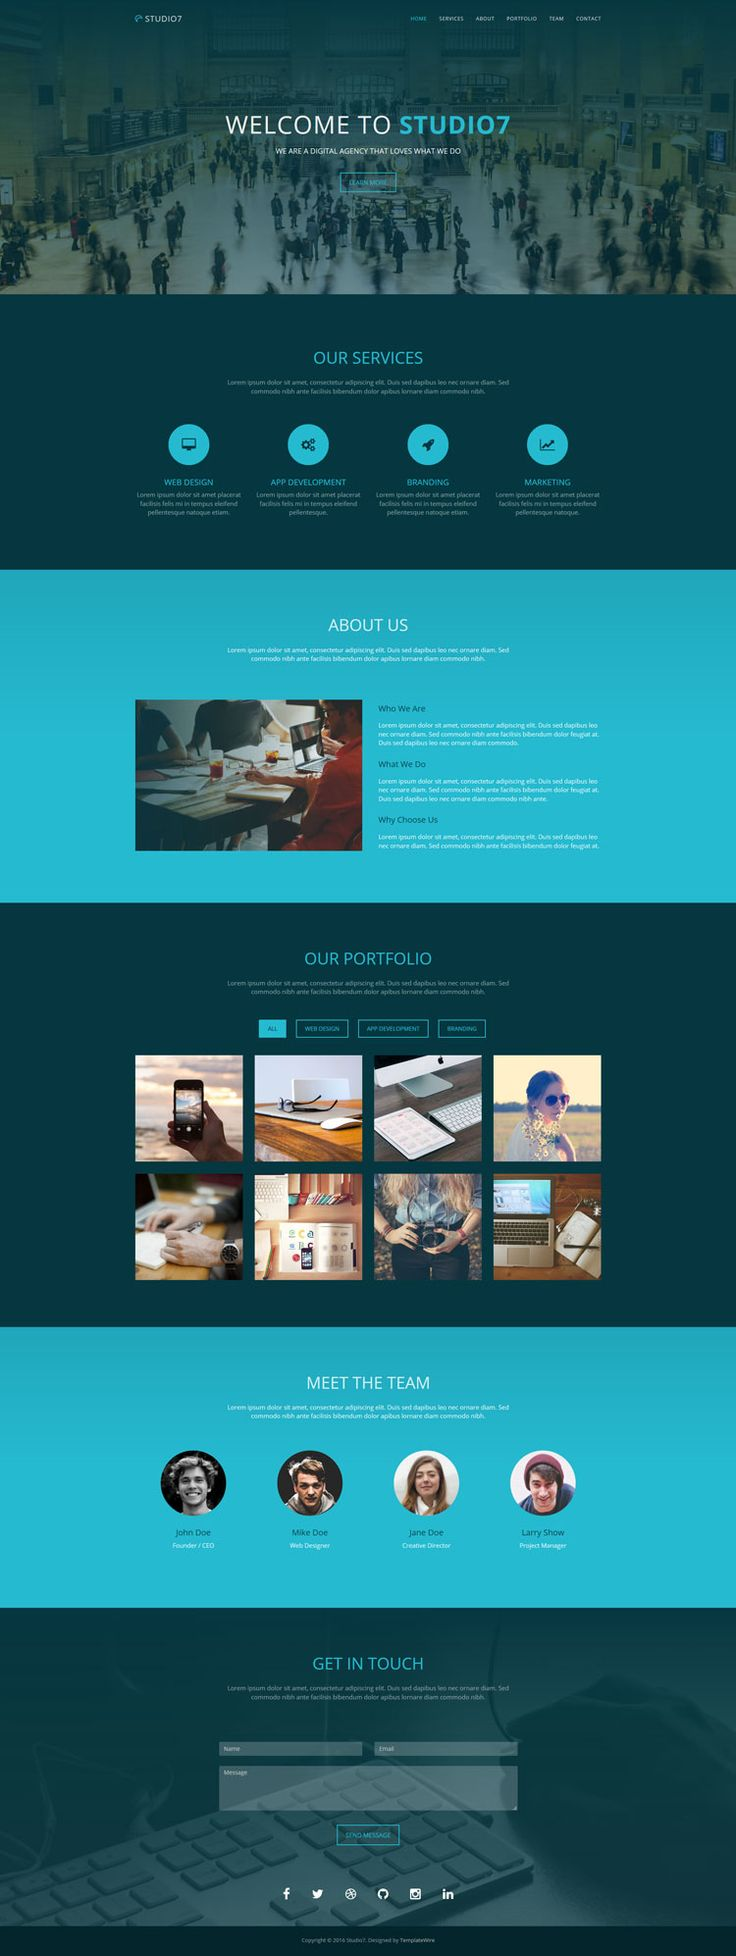 36 best Free Bootstrap Templates images on Pinterest | Responsive ...